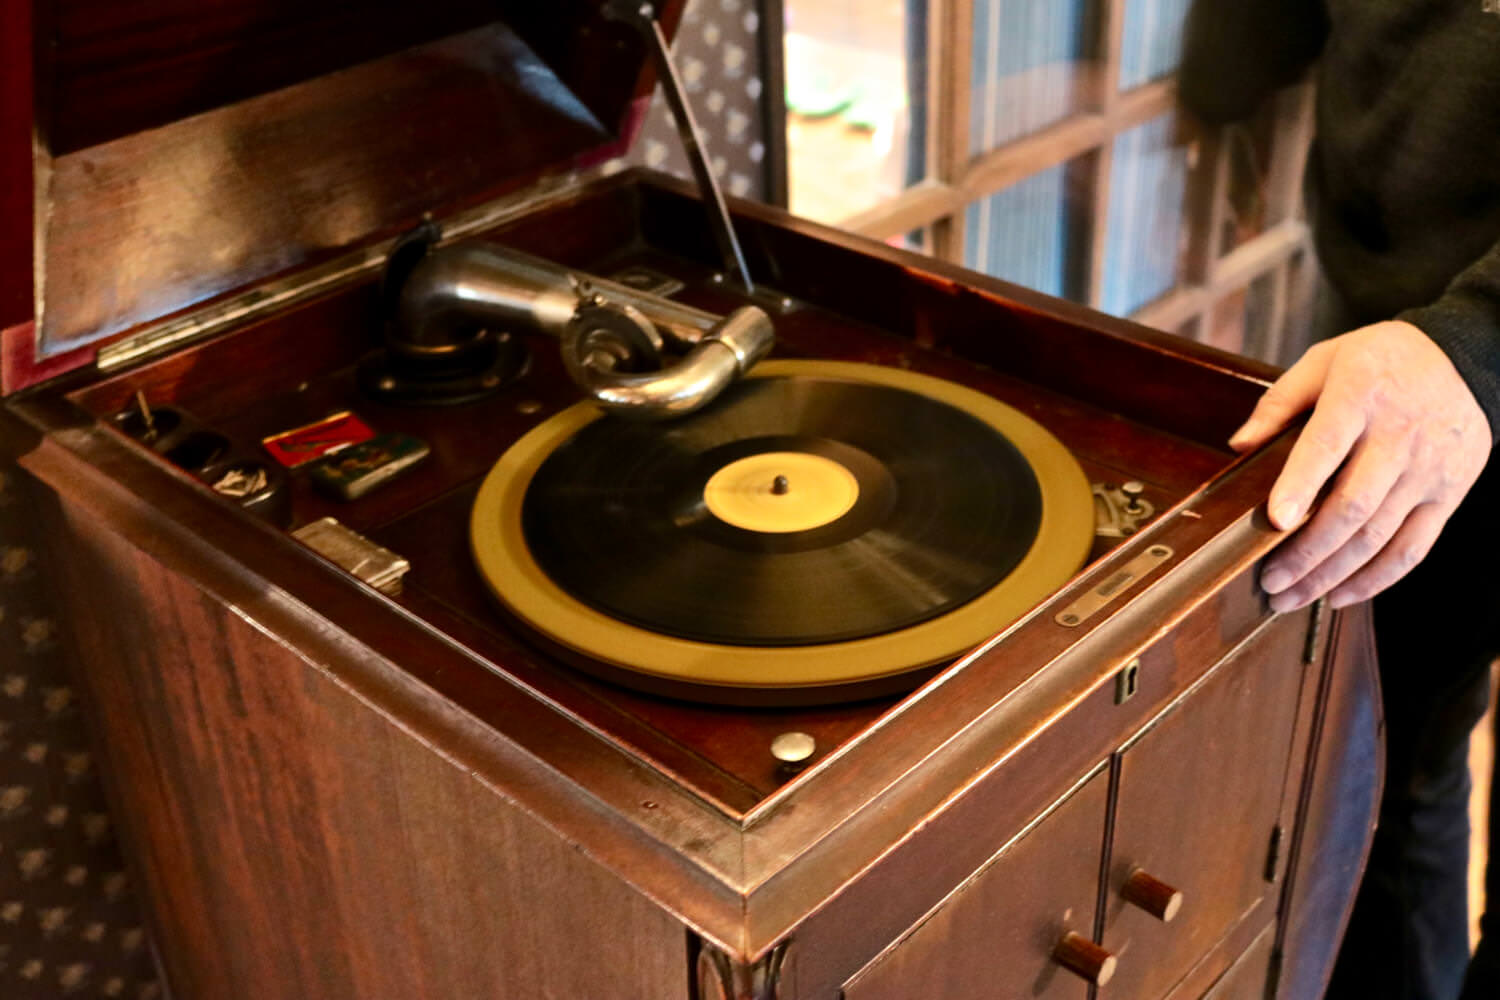 Old record player at cafe place